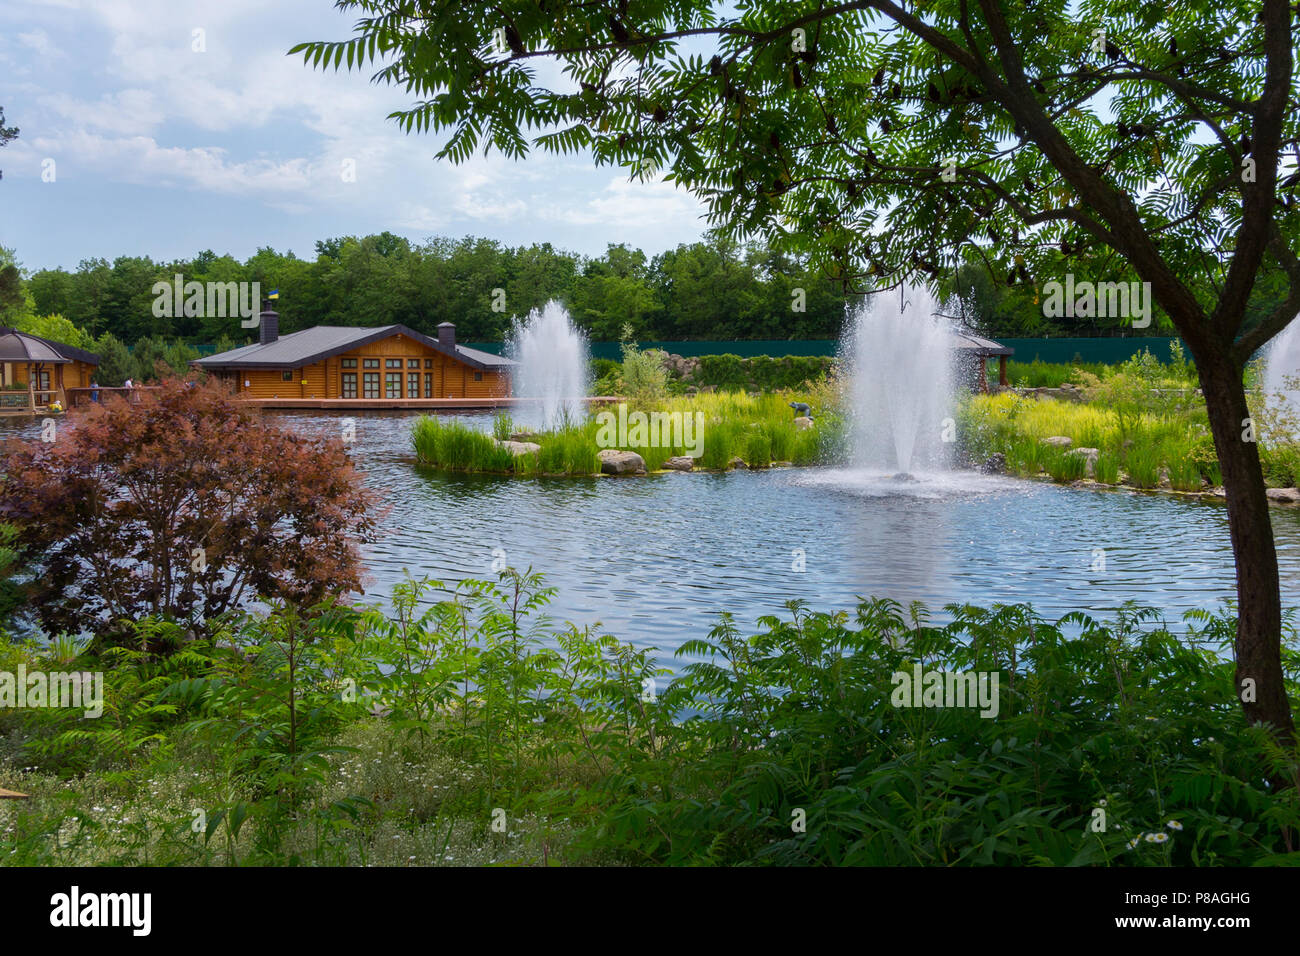 Beautiful Landscape Design With A Wooden House And Fountains On The Lake .  For Your Design